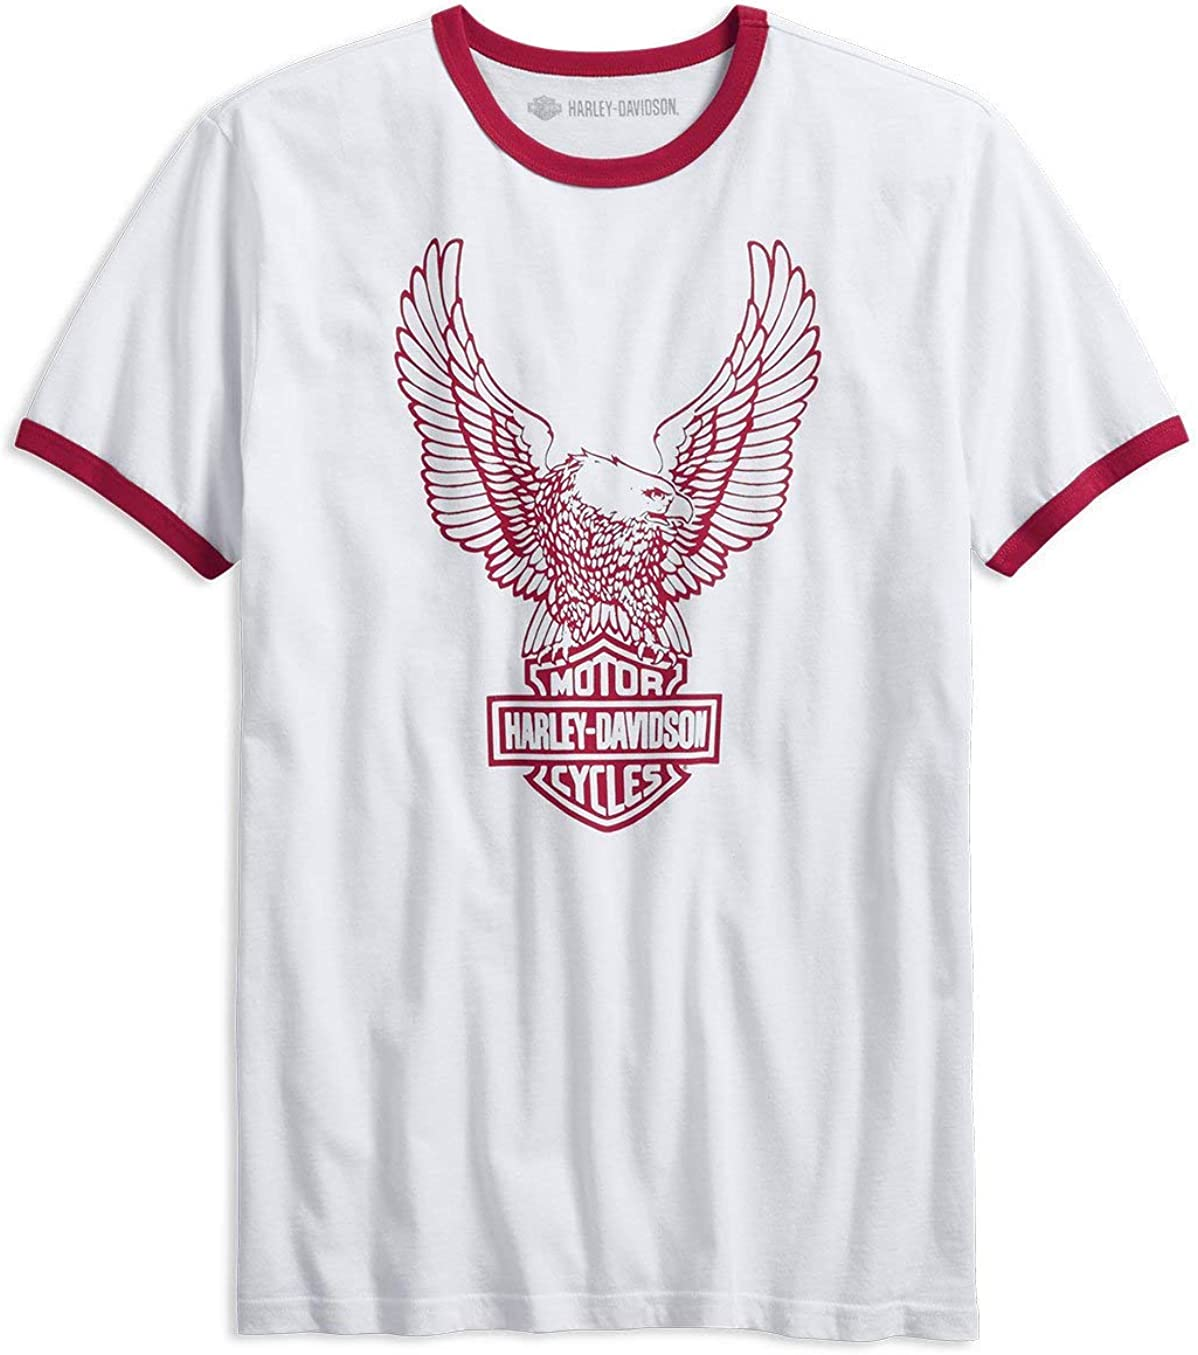 HARLEY-DAVIDSON® Mens Retro Eagle Logo Slim Fit tee - 99212-19VM: Amazon.es: Ropa y accesorios